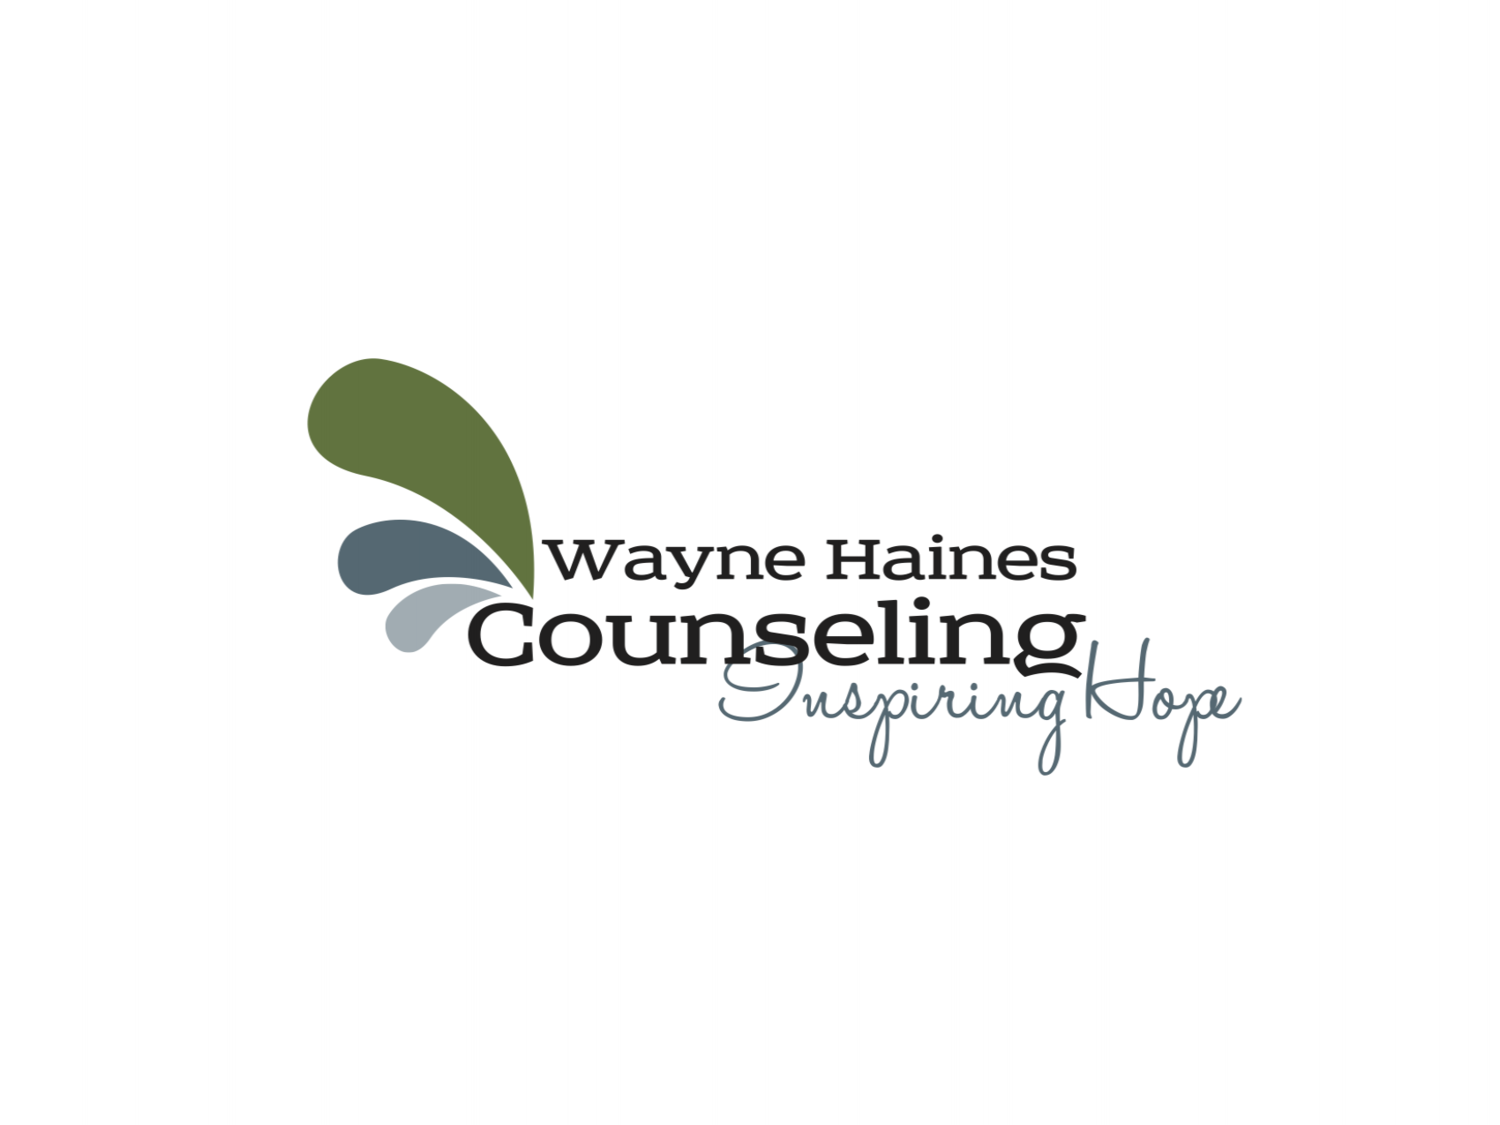 Wayne Haines Counseling